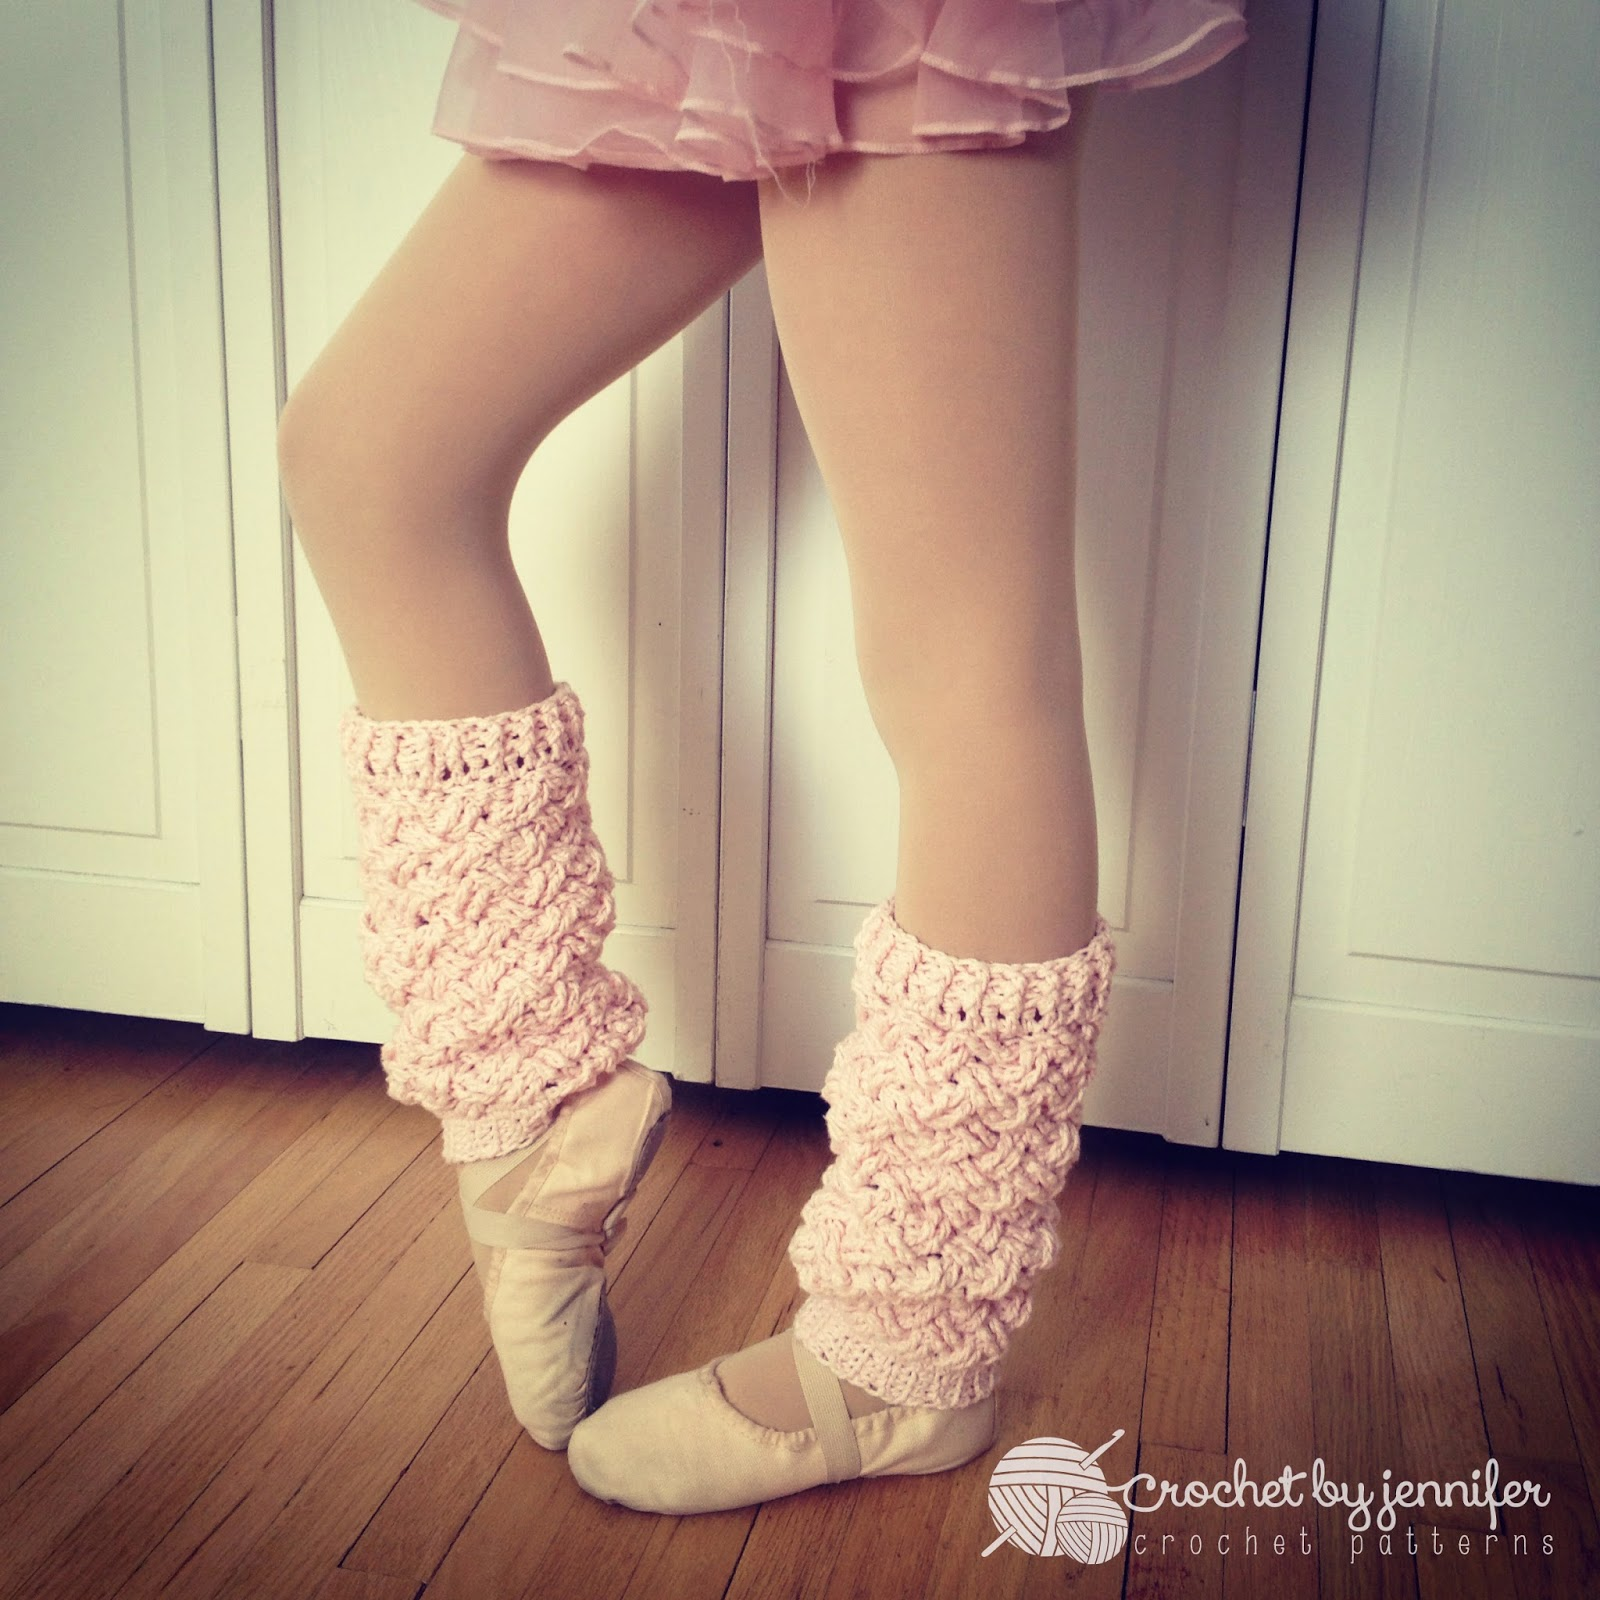 Crochet Patterns by Jennifer: Ballet or Dance inspired Crochet Patterns